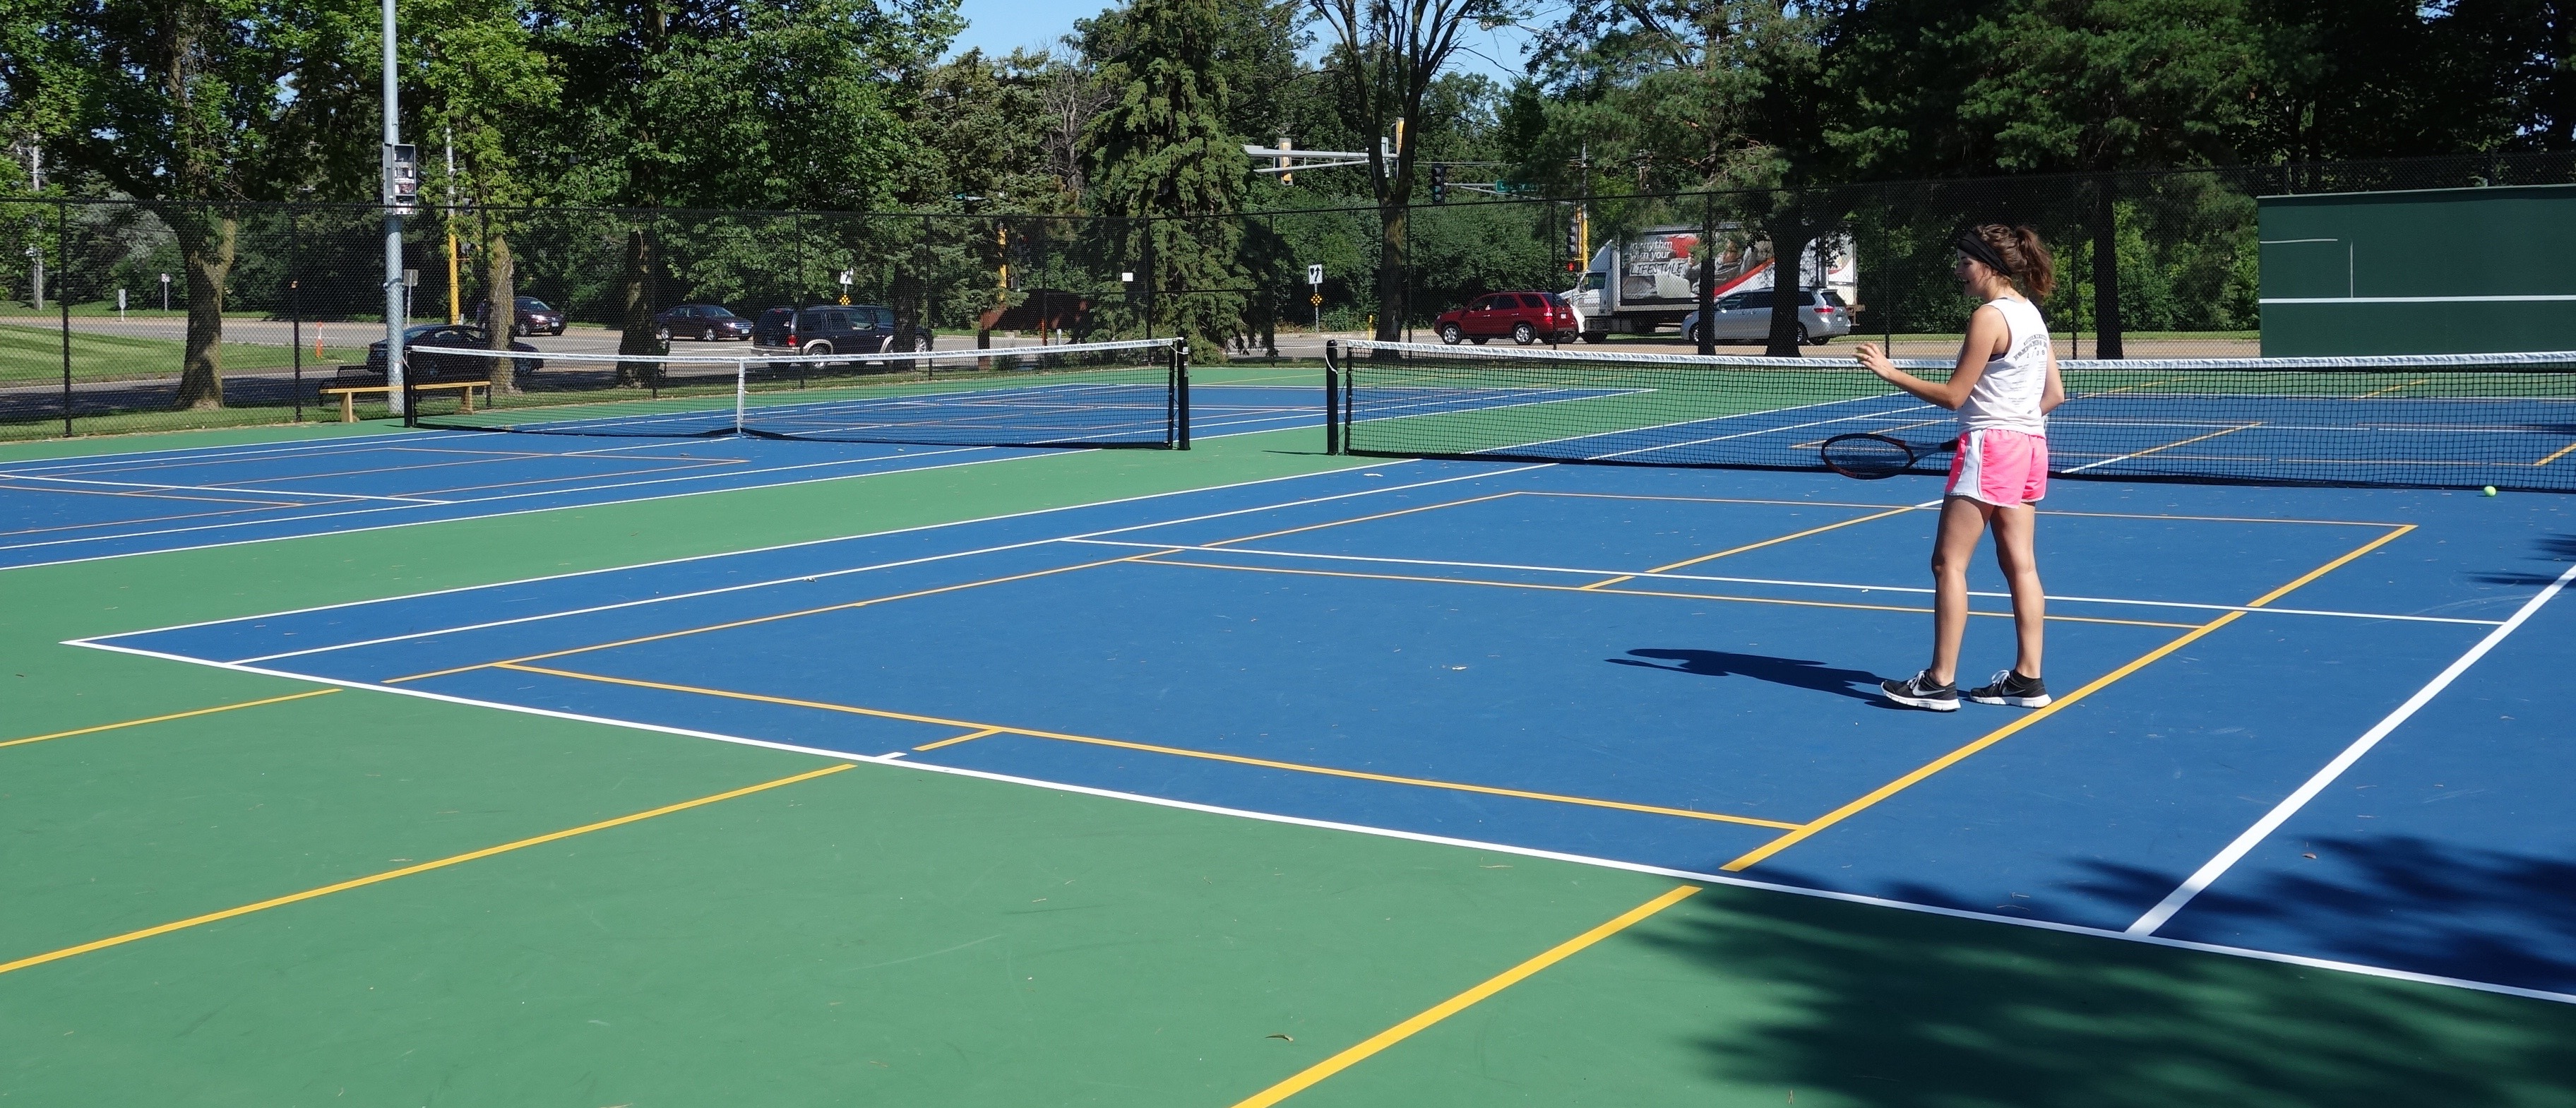 Evergreen tennis court